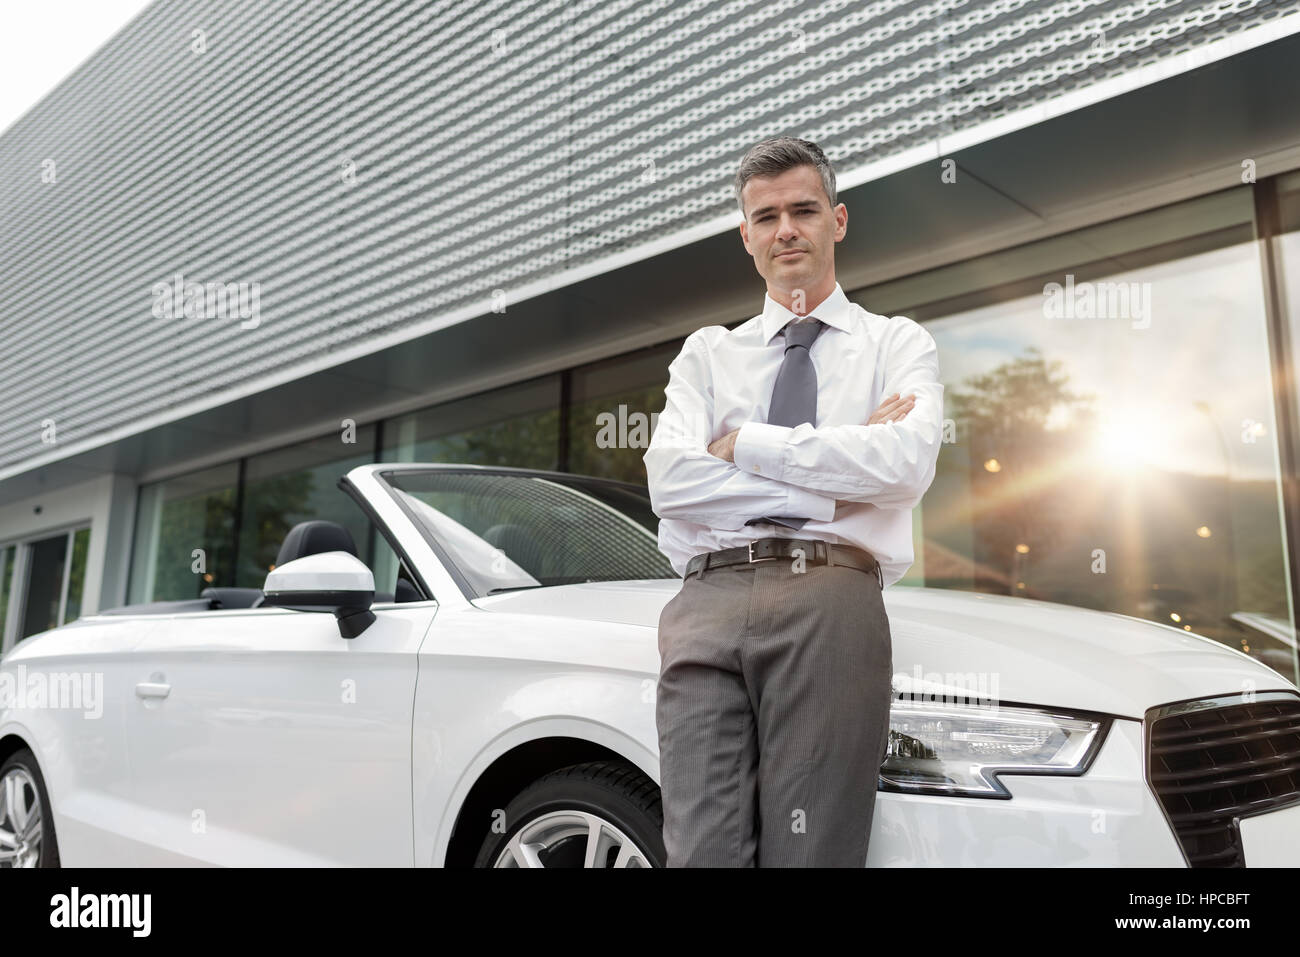 Confident car salesman leaning on a luxury convertible car, showroom on the background, dealership and business - Stock Image